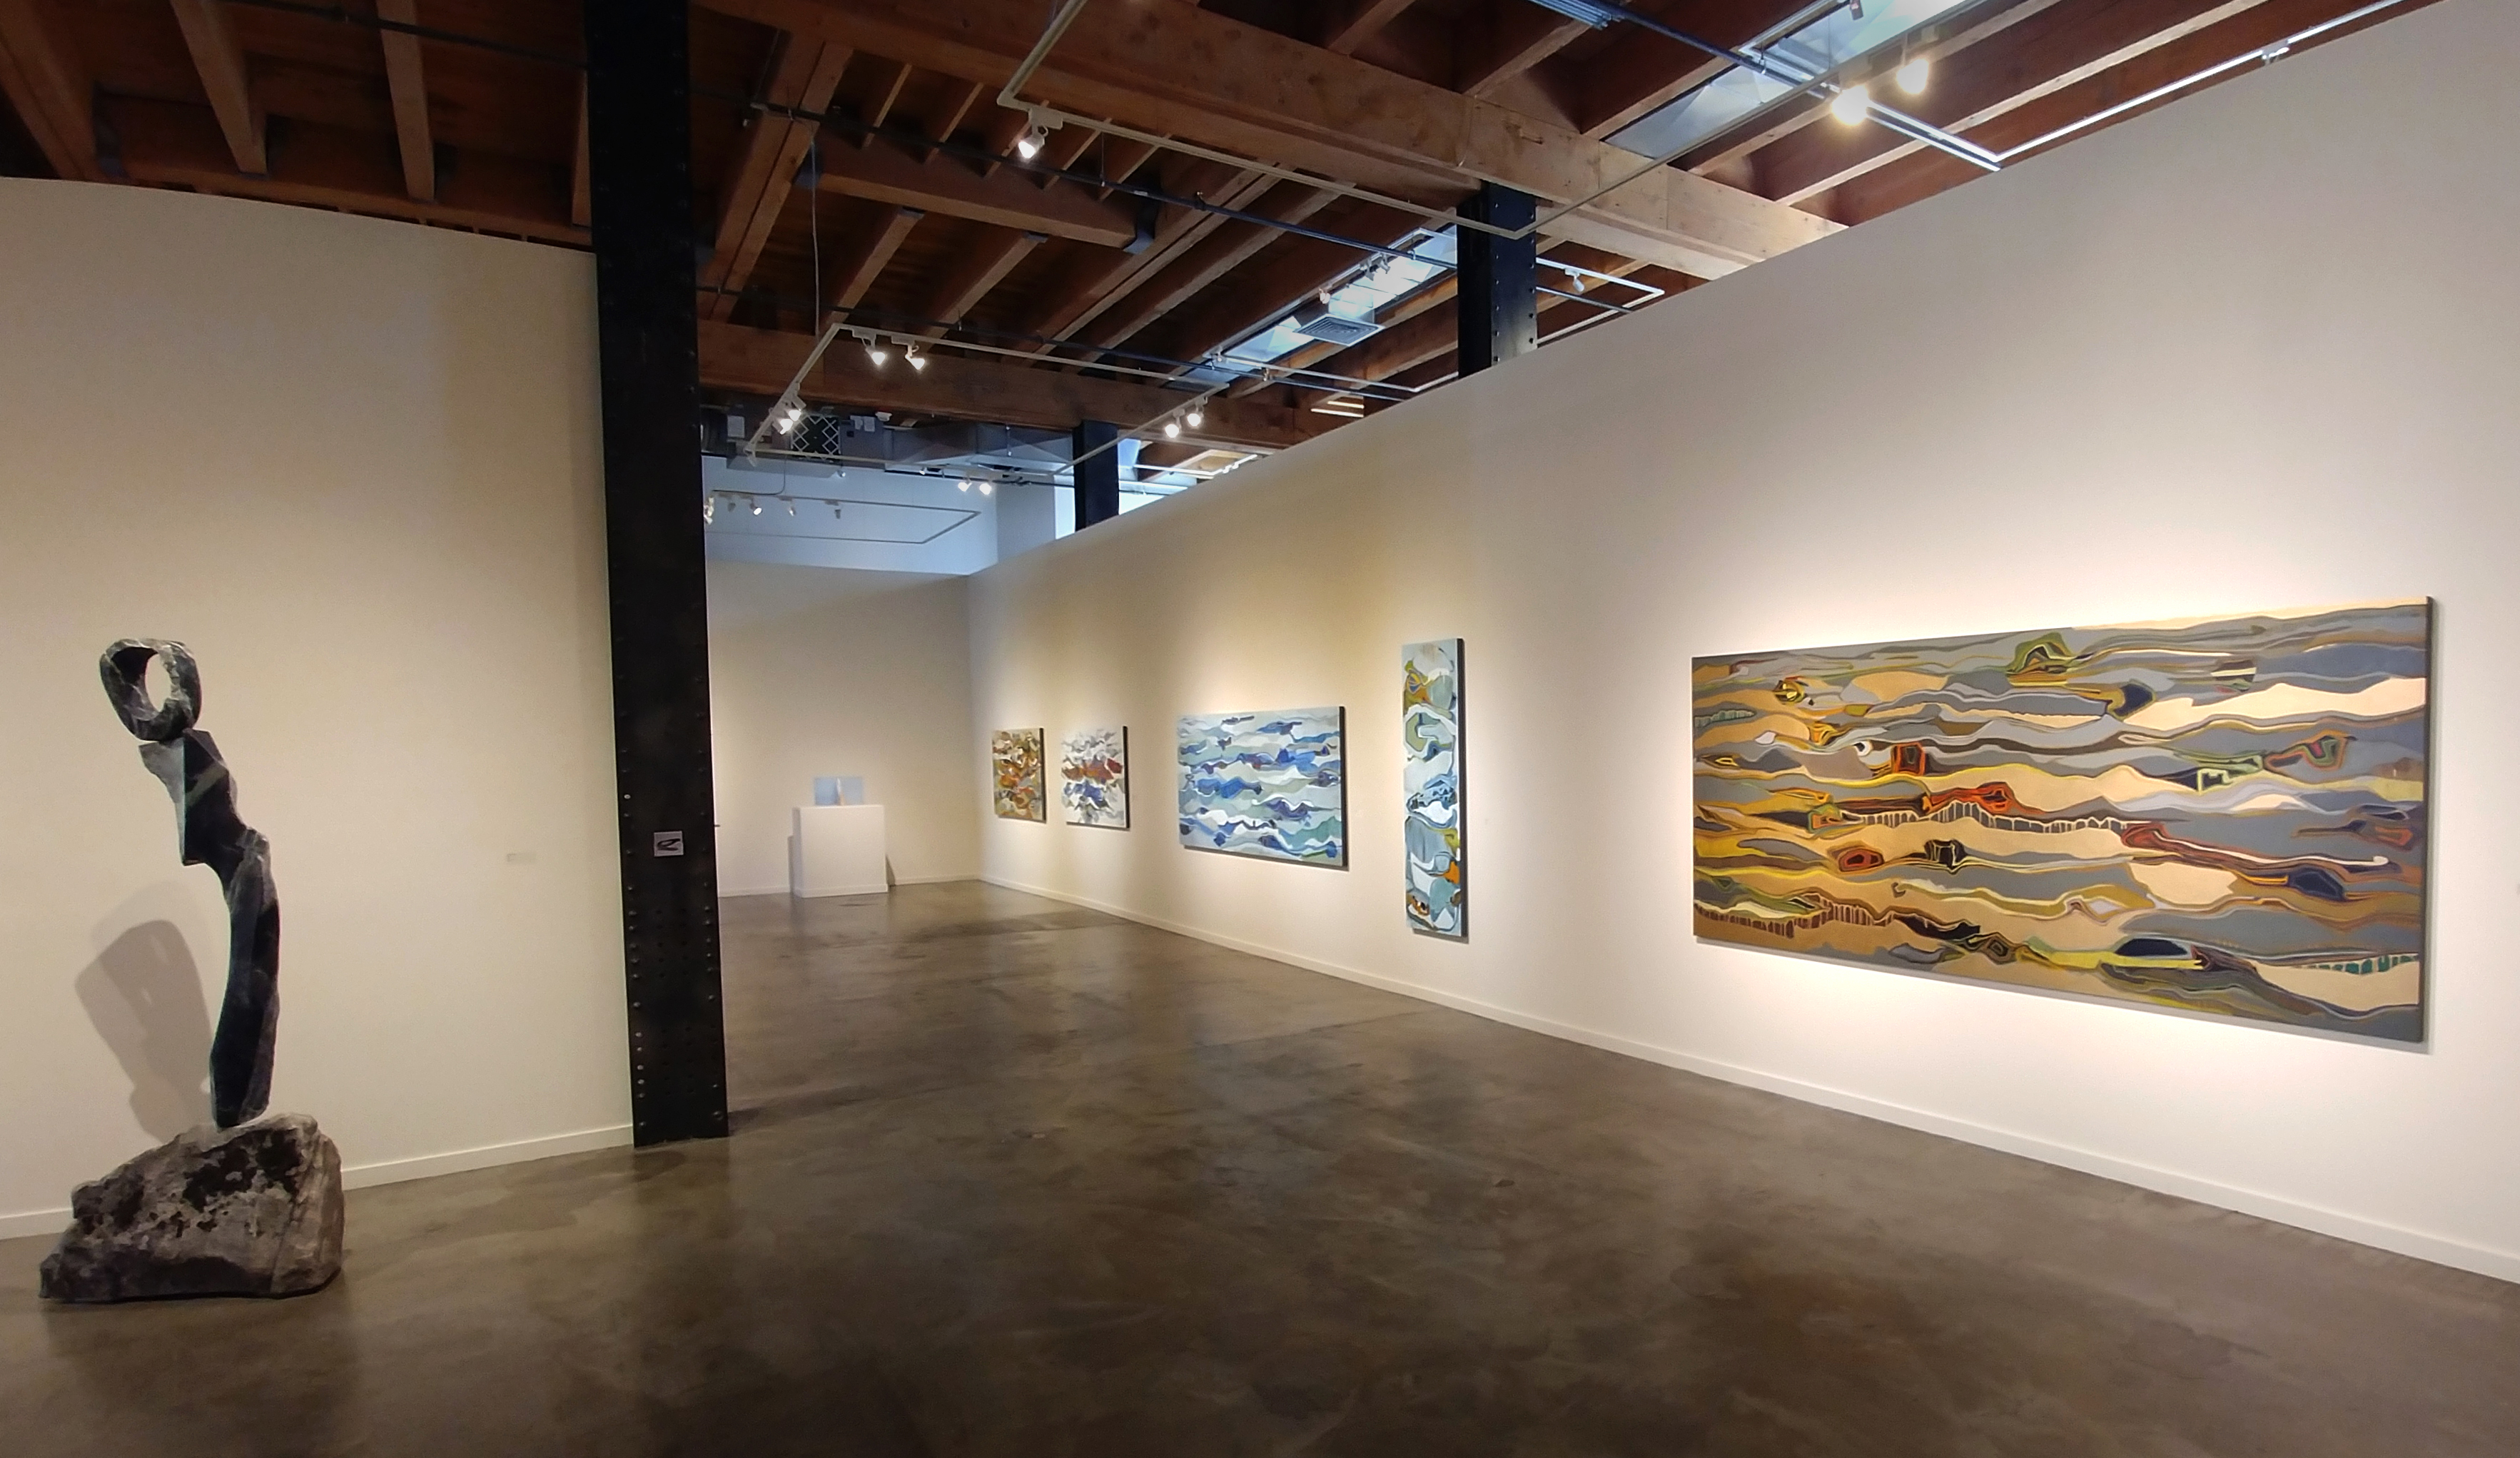 gallery show of art by Chase Langford